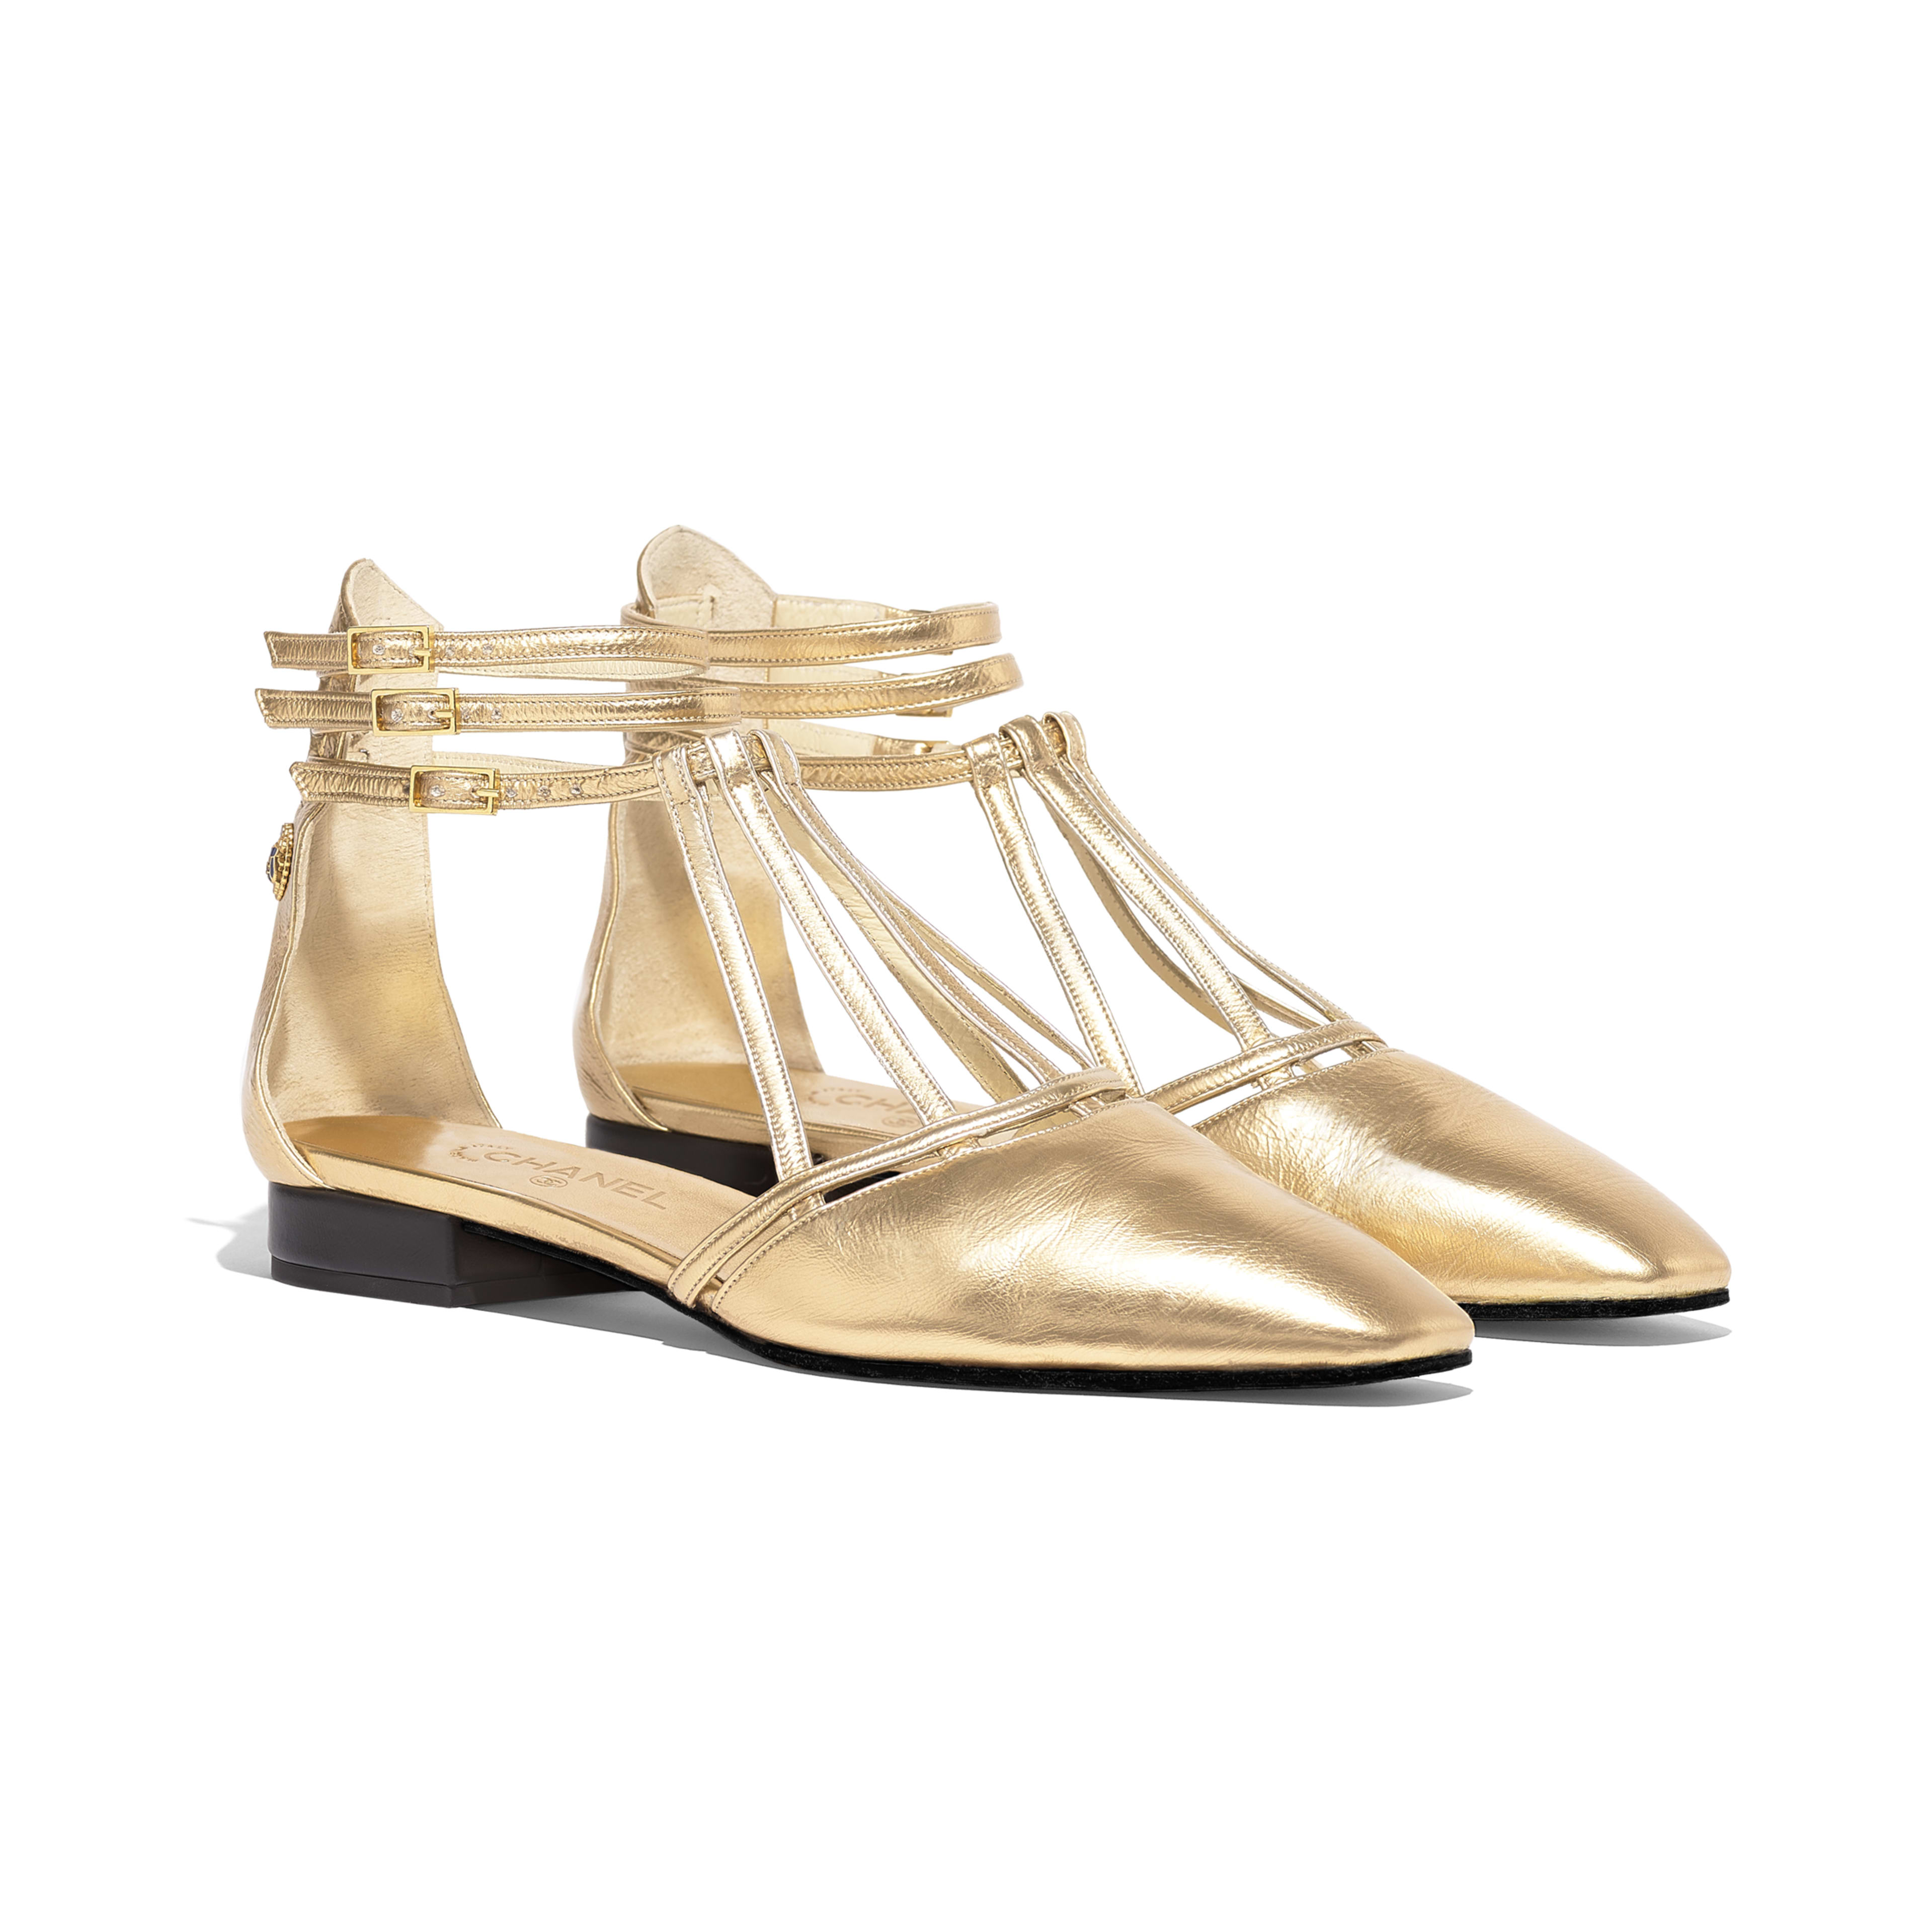 Sandals - Gold - Laminated Lambskin - Alternative view - see full sized version